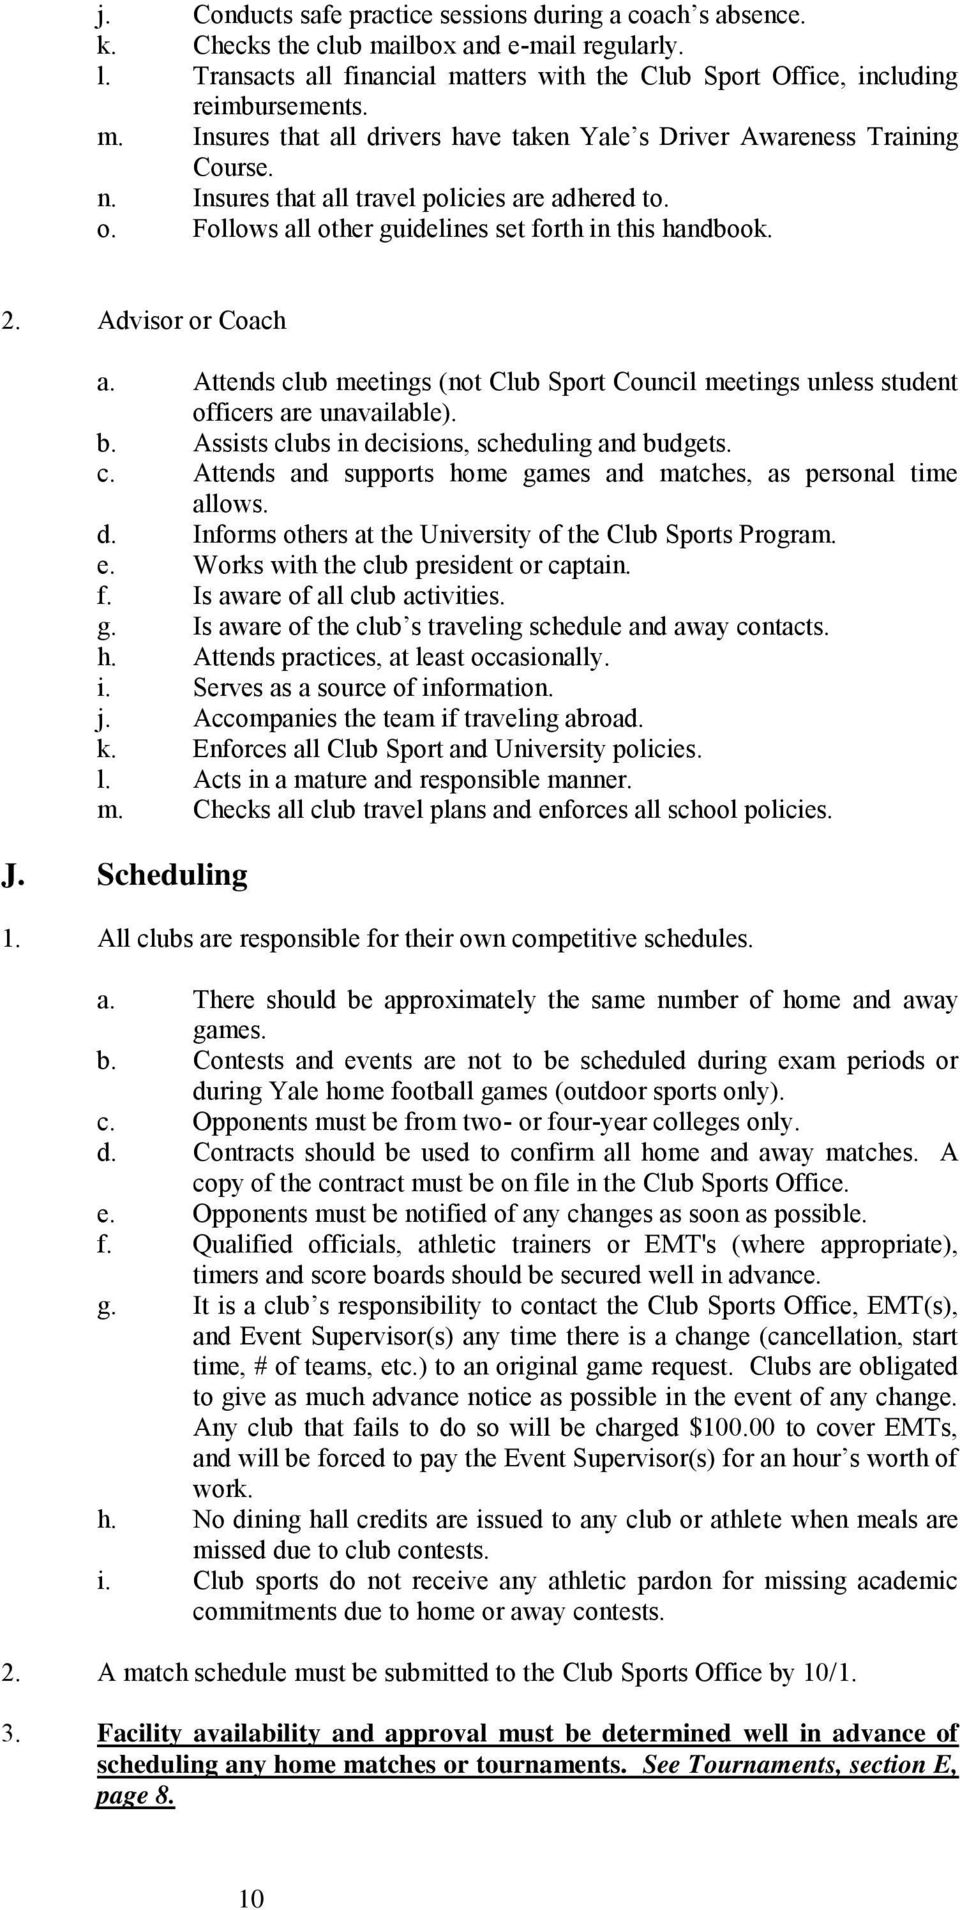 Advisor or Coach a. Attends club meetings (not Club Sport Council meetings unless student officers are unavailable). b. Assists clubs in decisions, scheduling and budgets. c. Attends and supports home games and matches, as personal time allows.